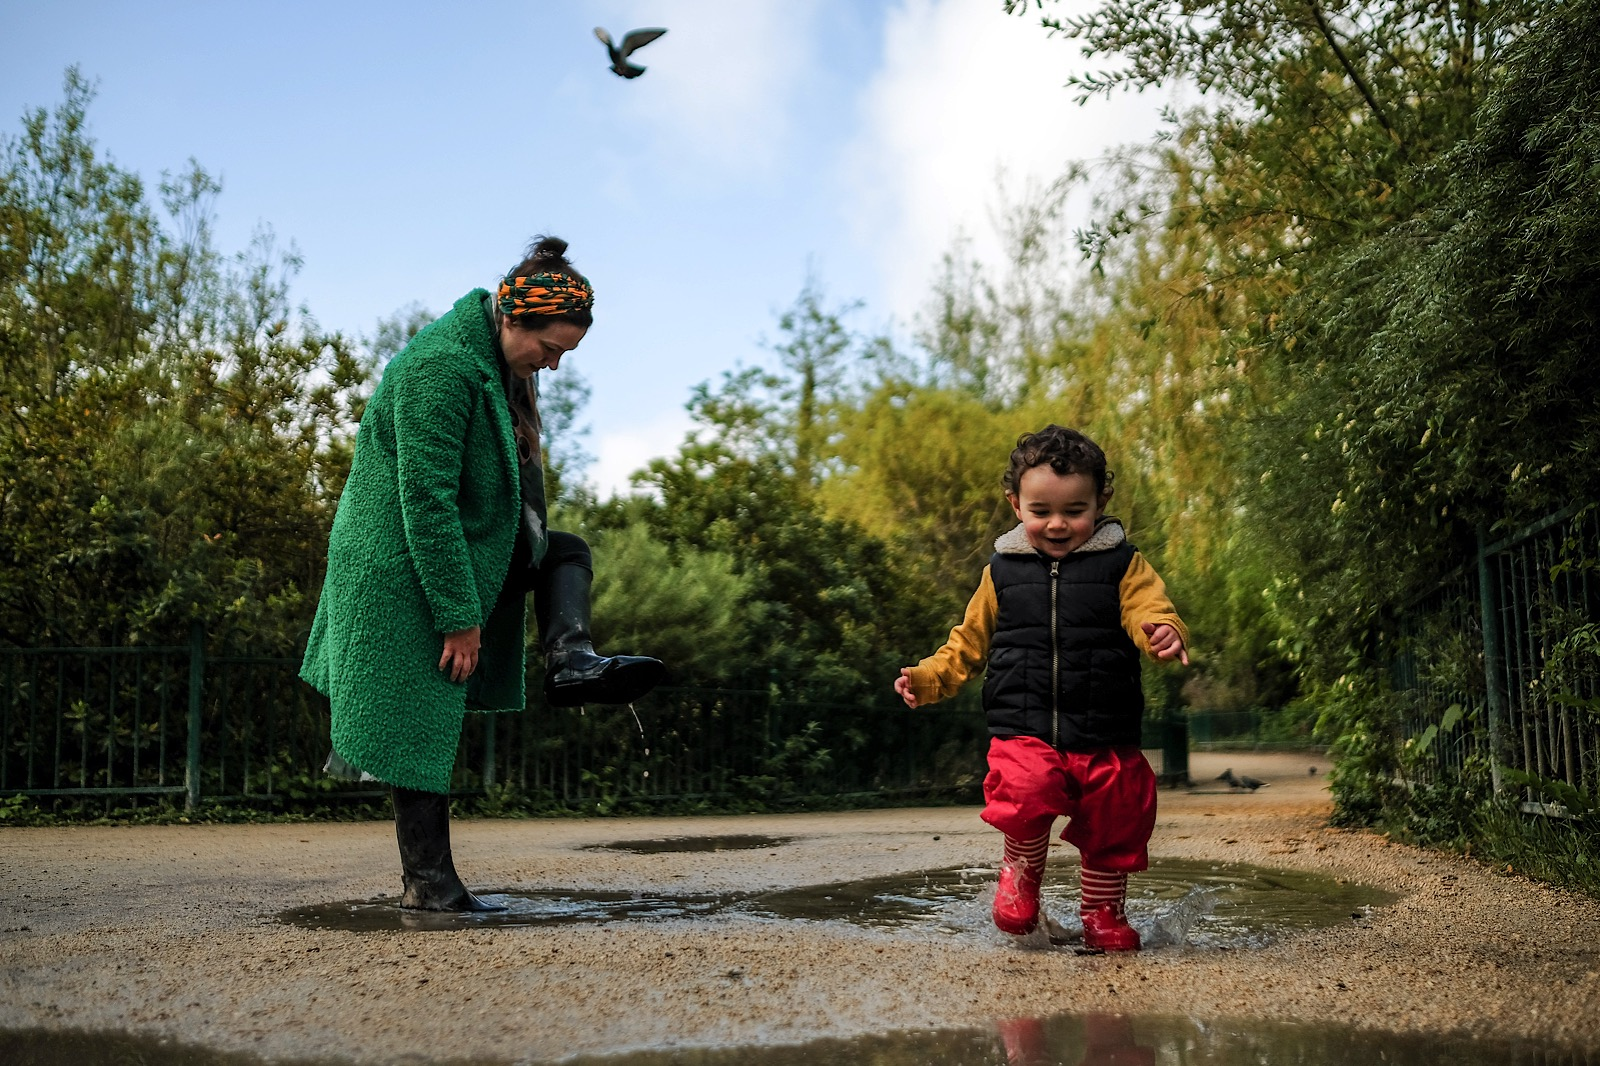 mother and son splashing in puddles during the covid-19 pandemic